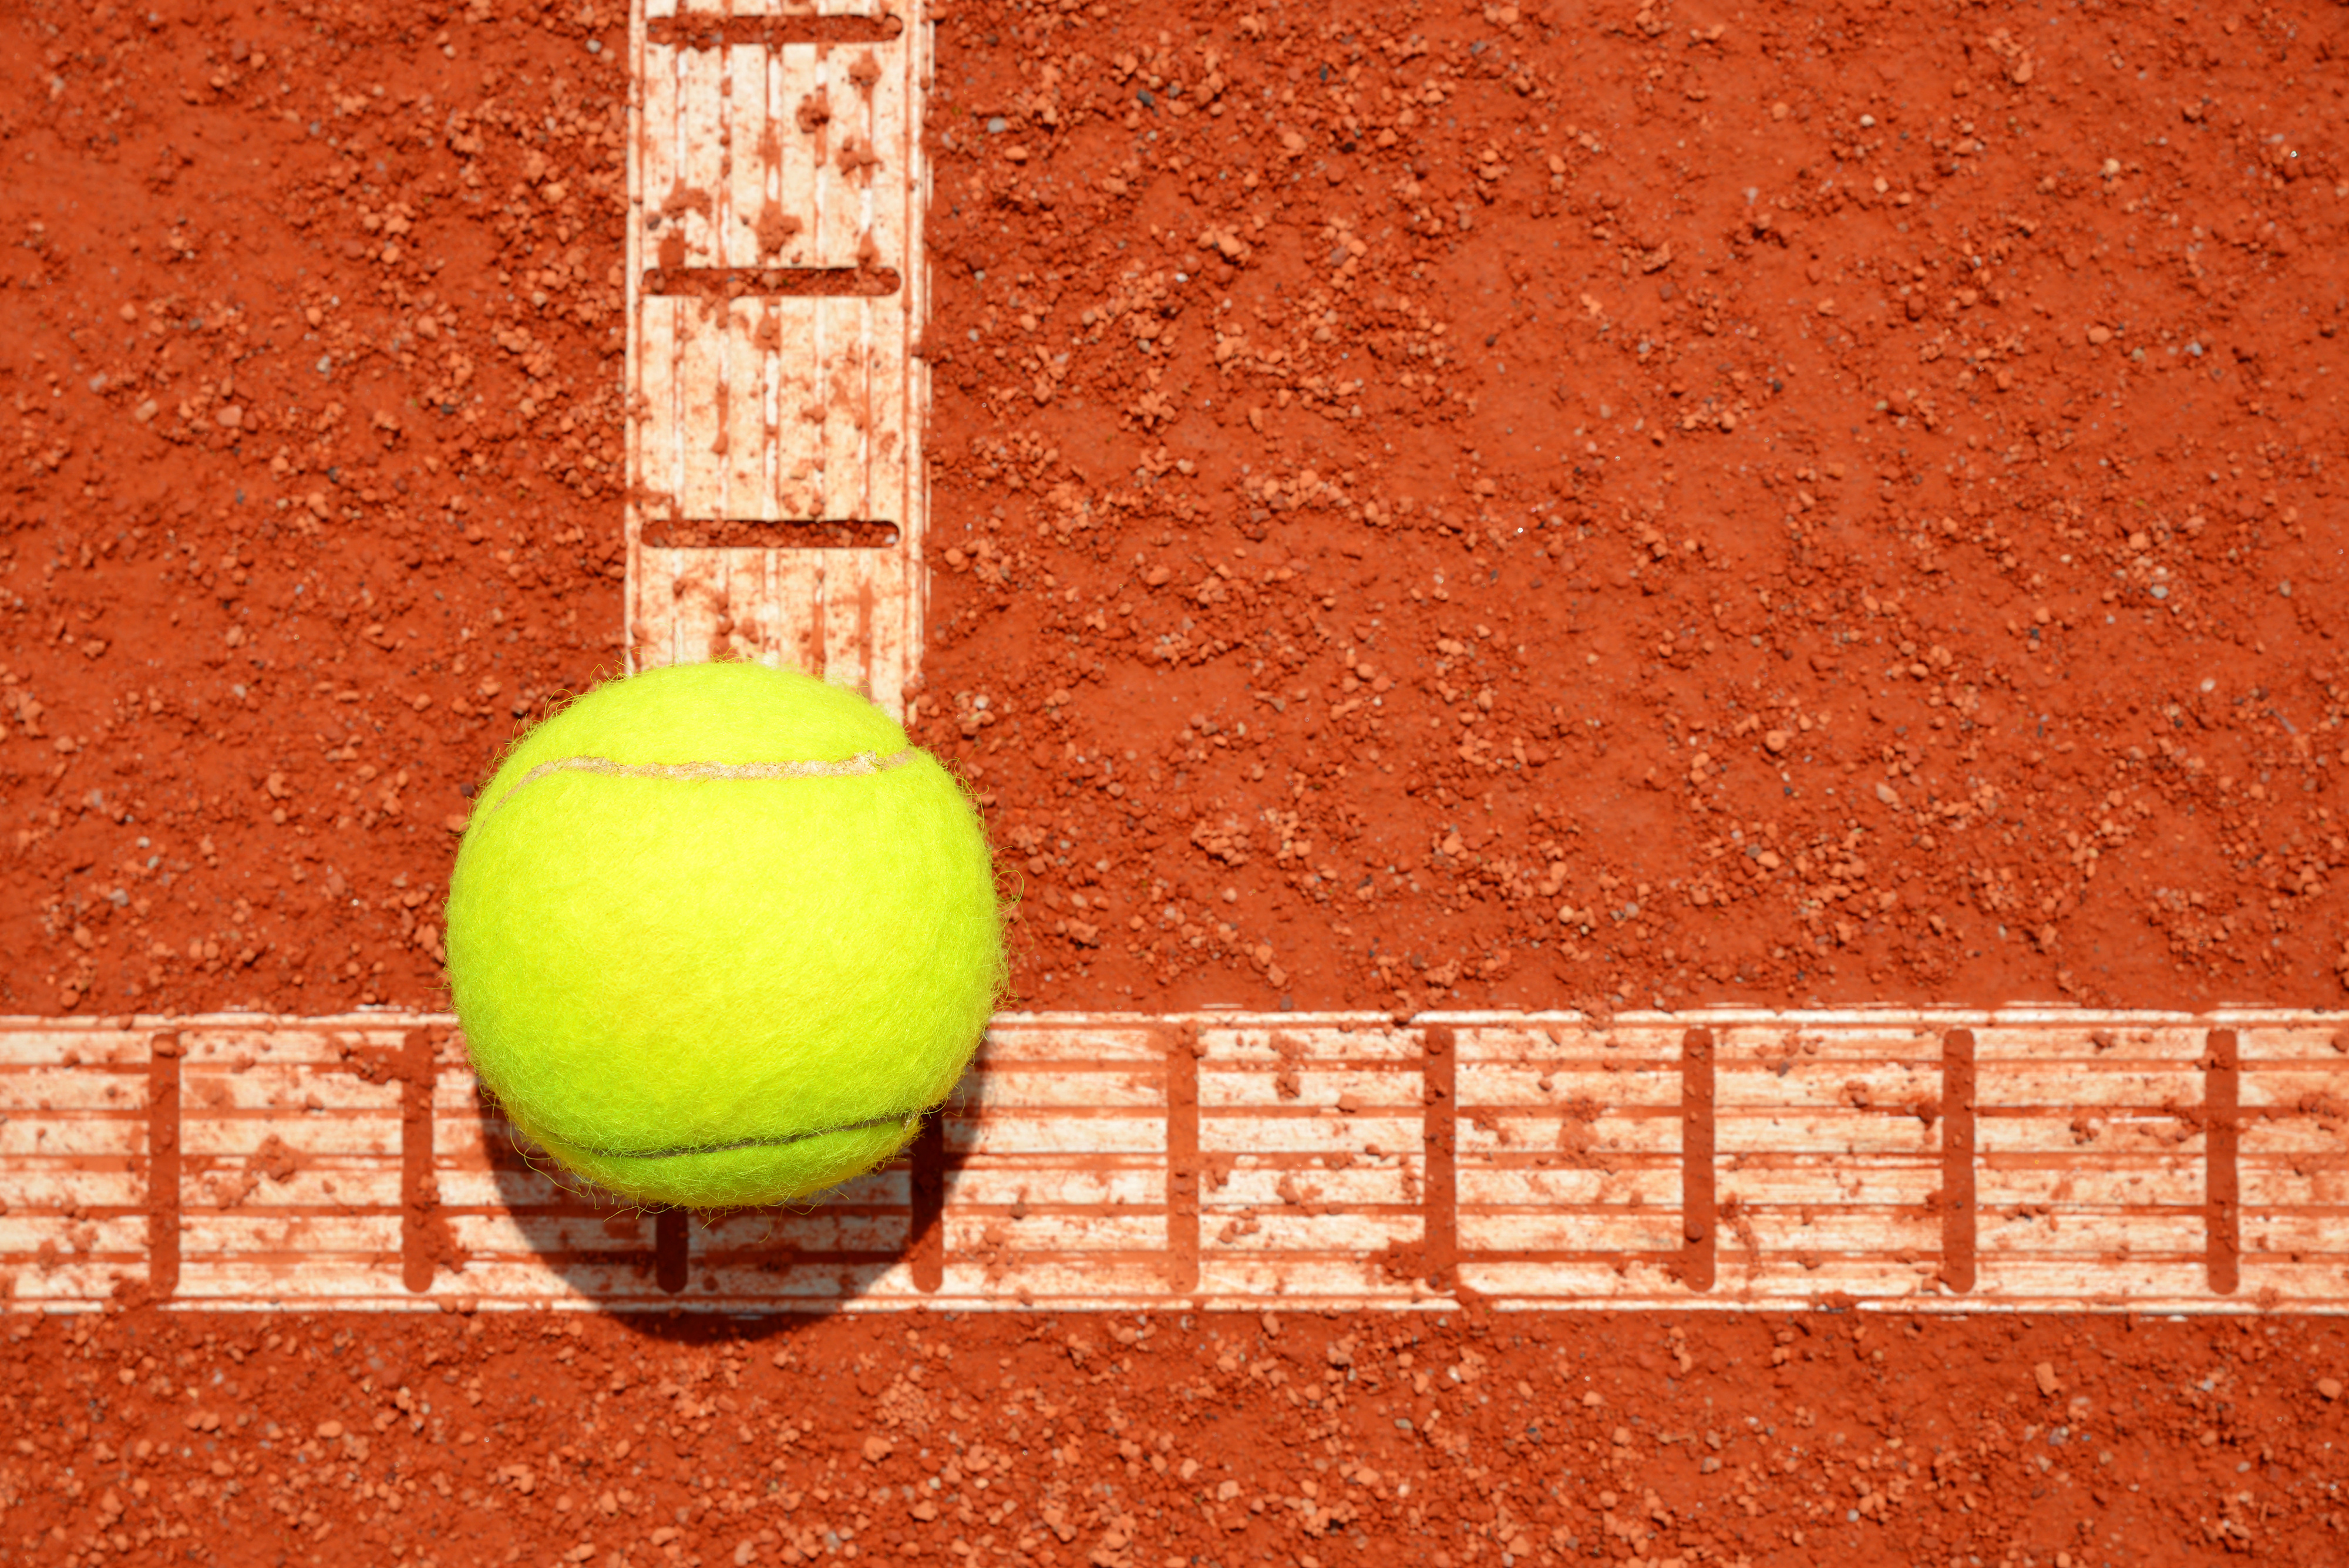 Tennis Ball On A Tennis Clay Court The Compliance And Ethics Blog